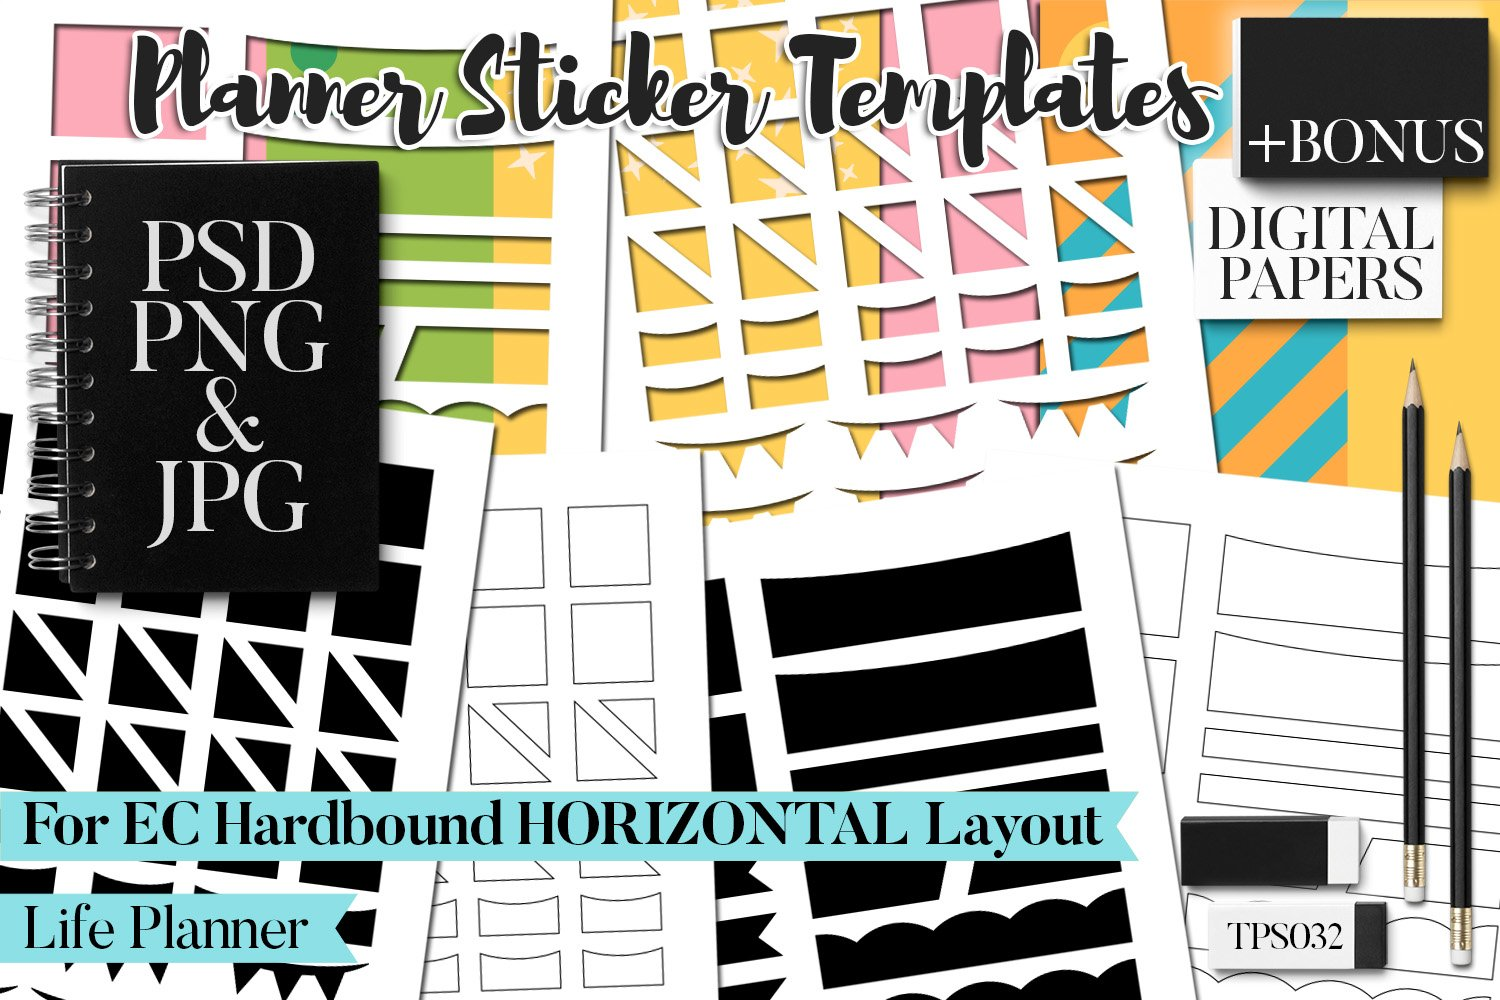 Planner Stickers Templates - Bundle Vol. 11 example image 8